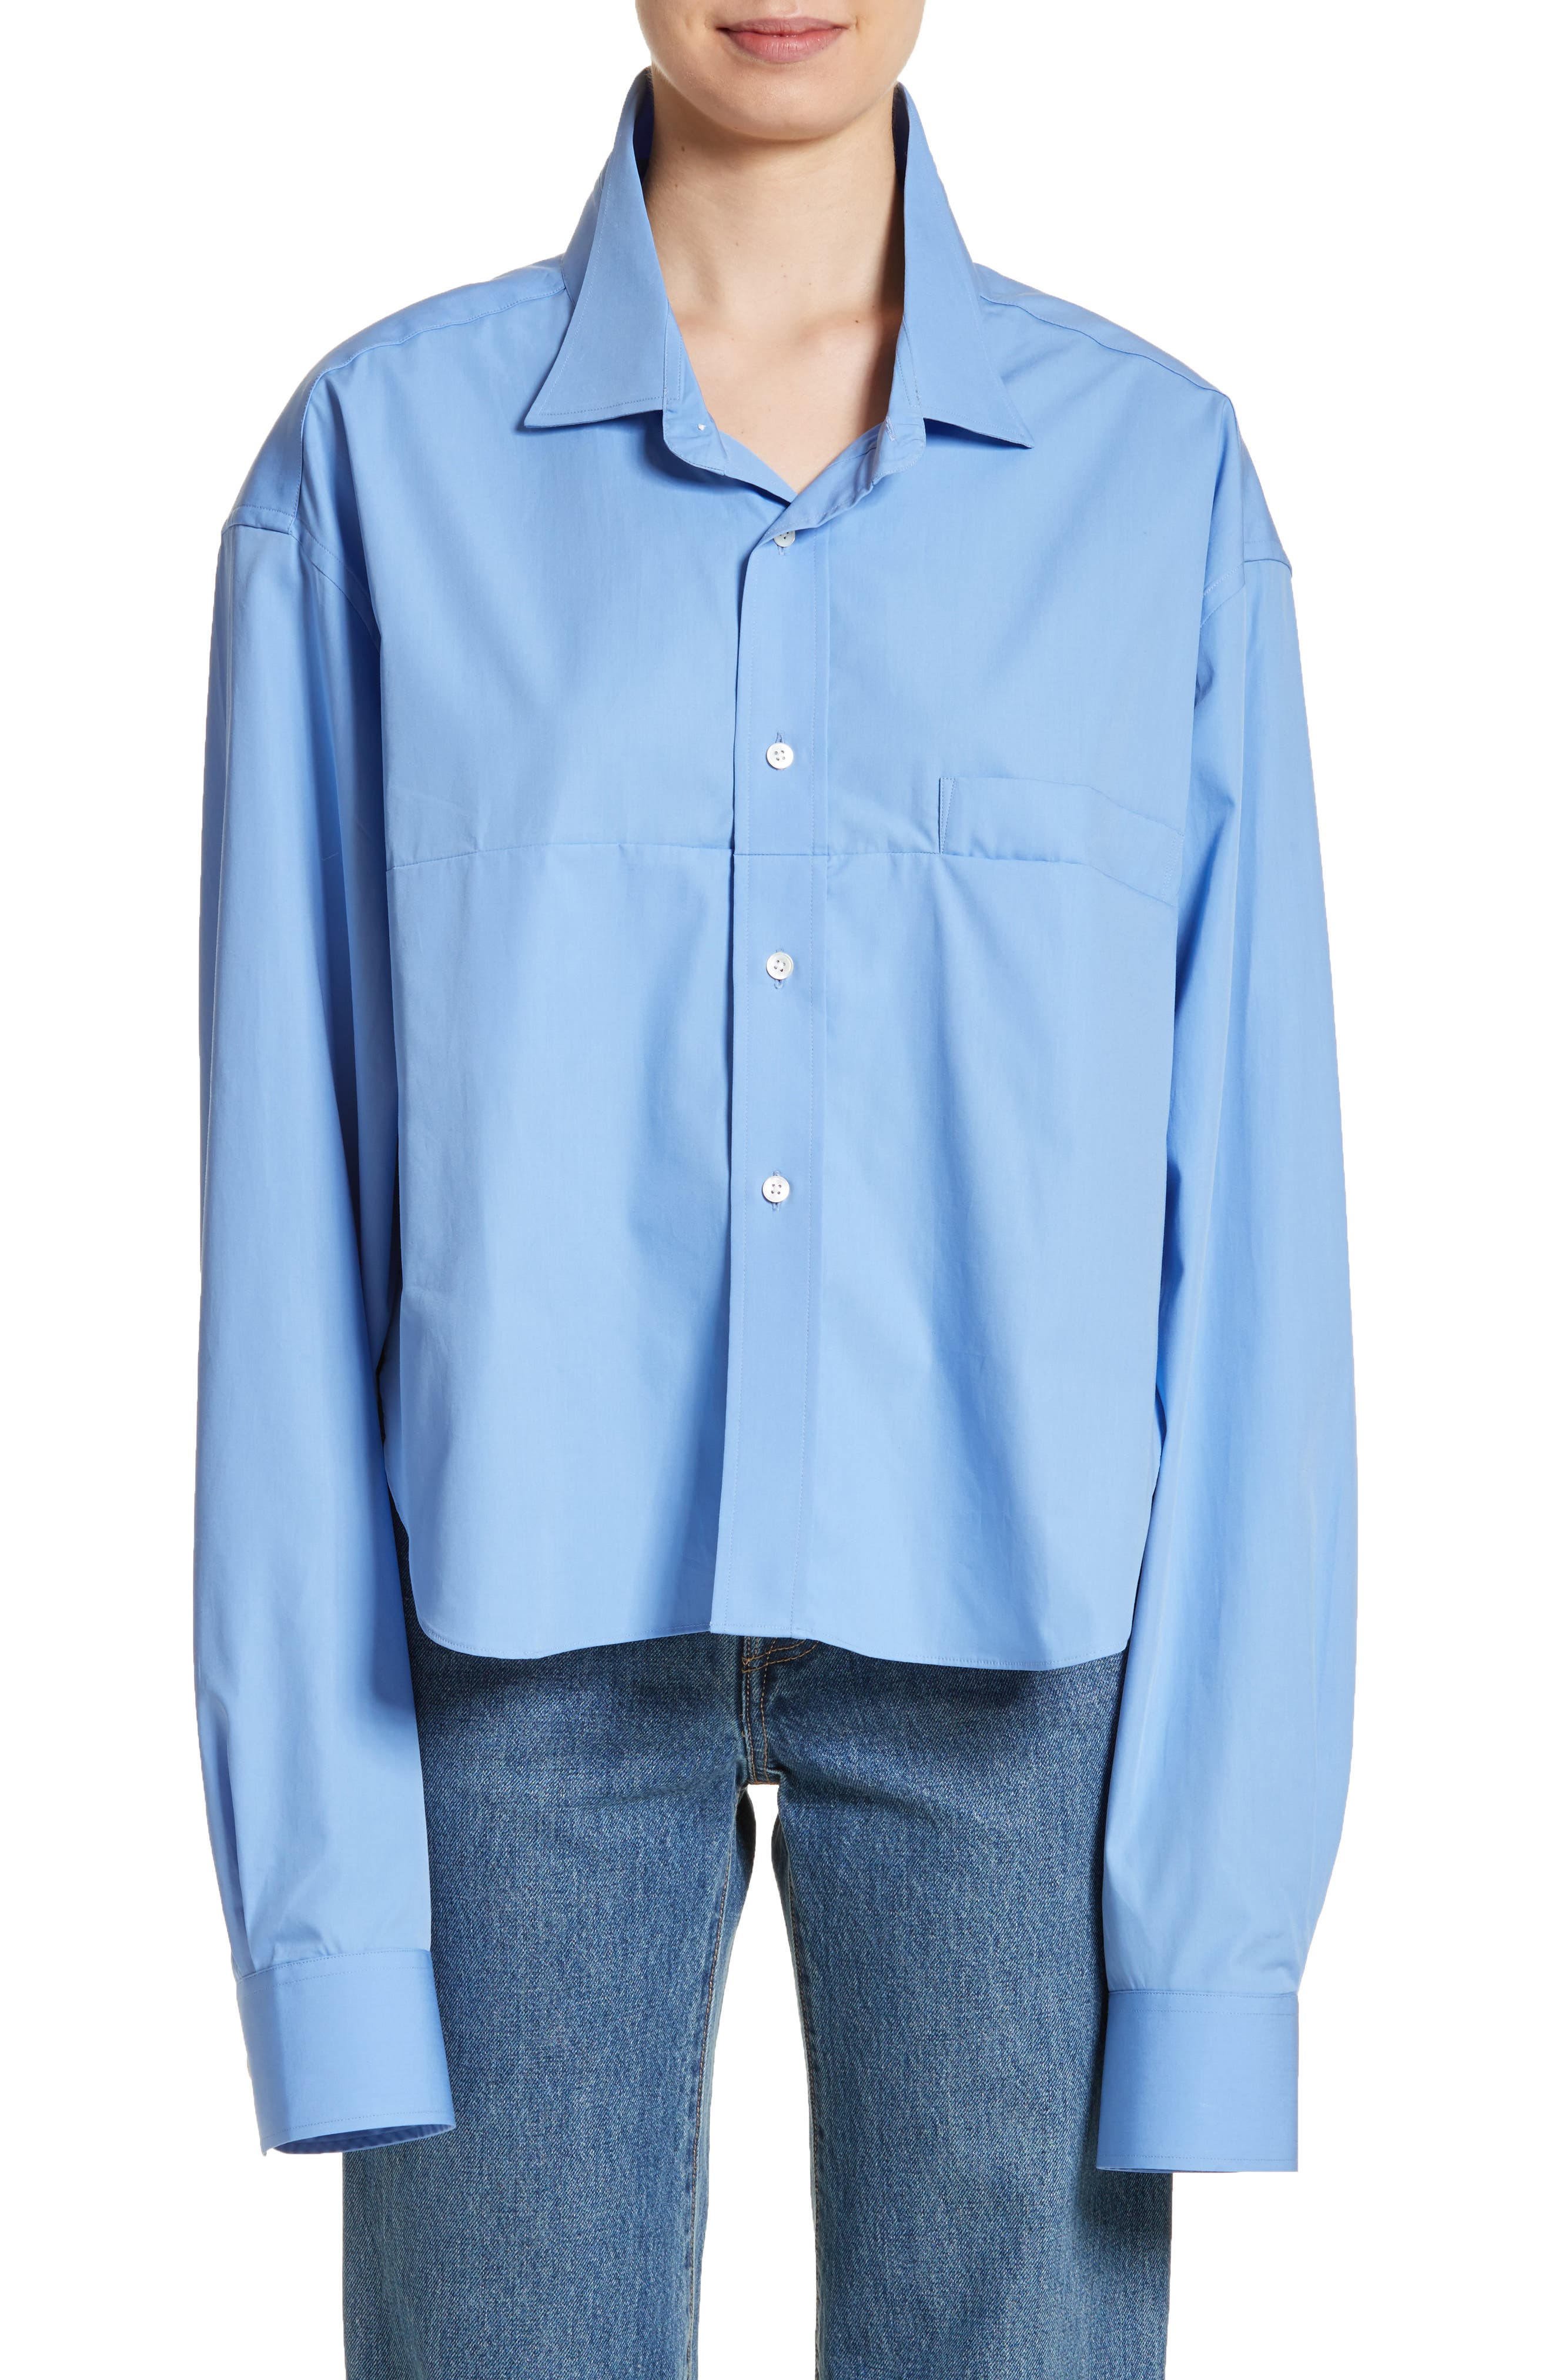 Vetements Social Worker Shirt